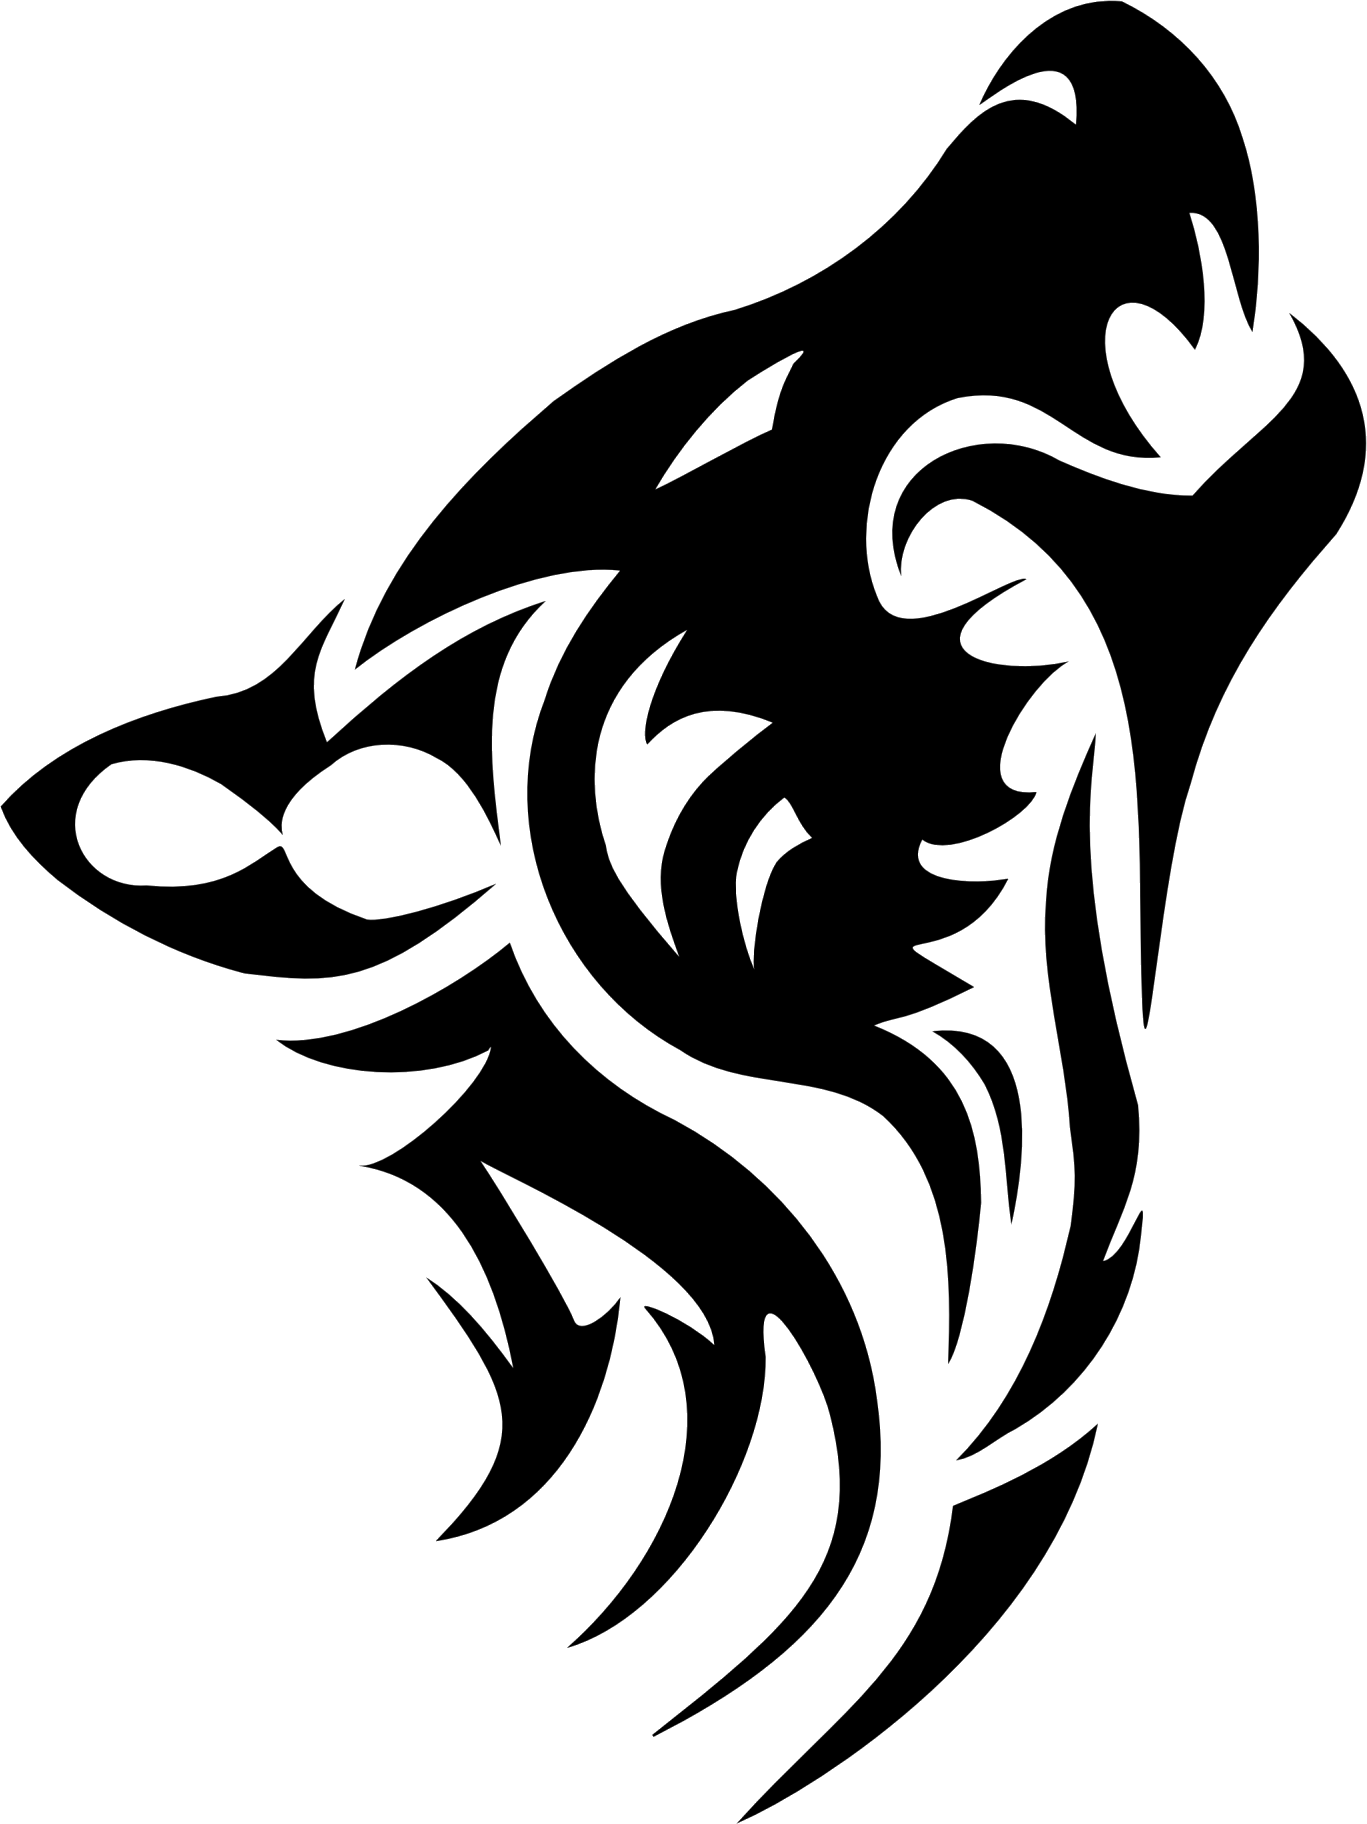 Tribal transparent background. Wolf tattoos png images